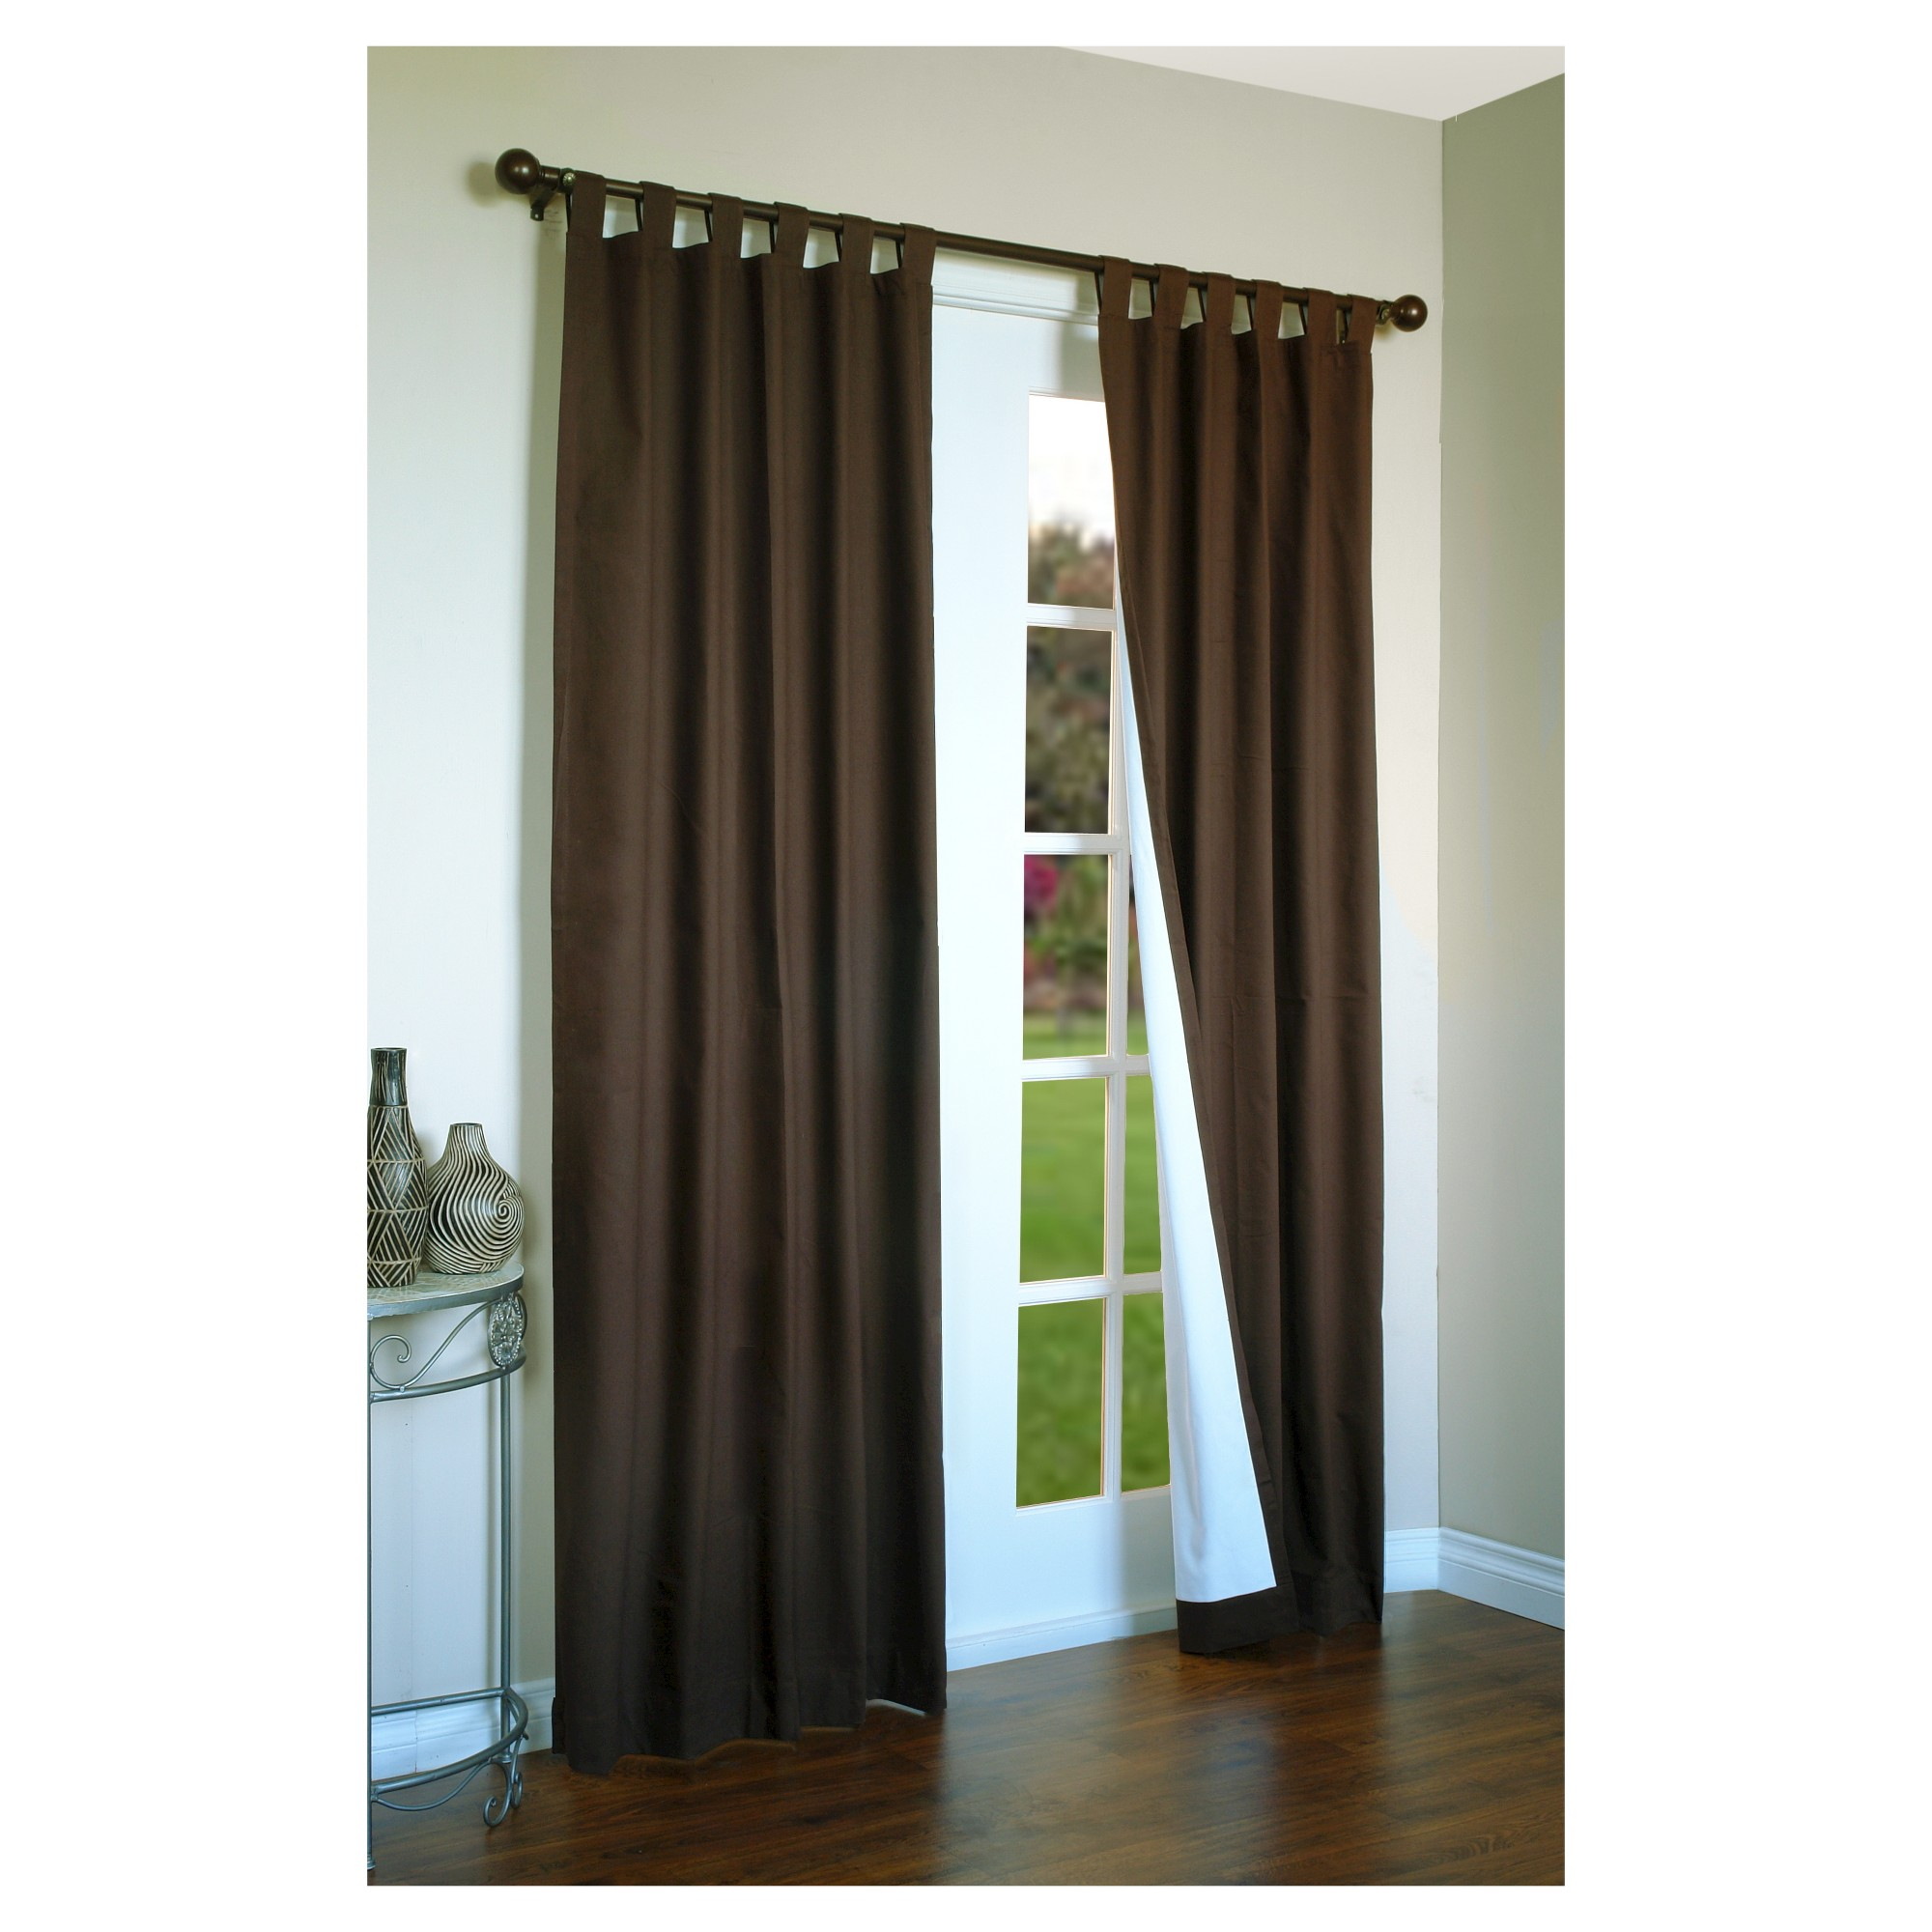 l sliding org door curtains amazon aquazolax glass commendable com curtain panel blackout panels handballtunisie